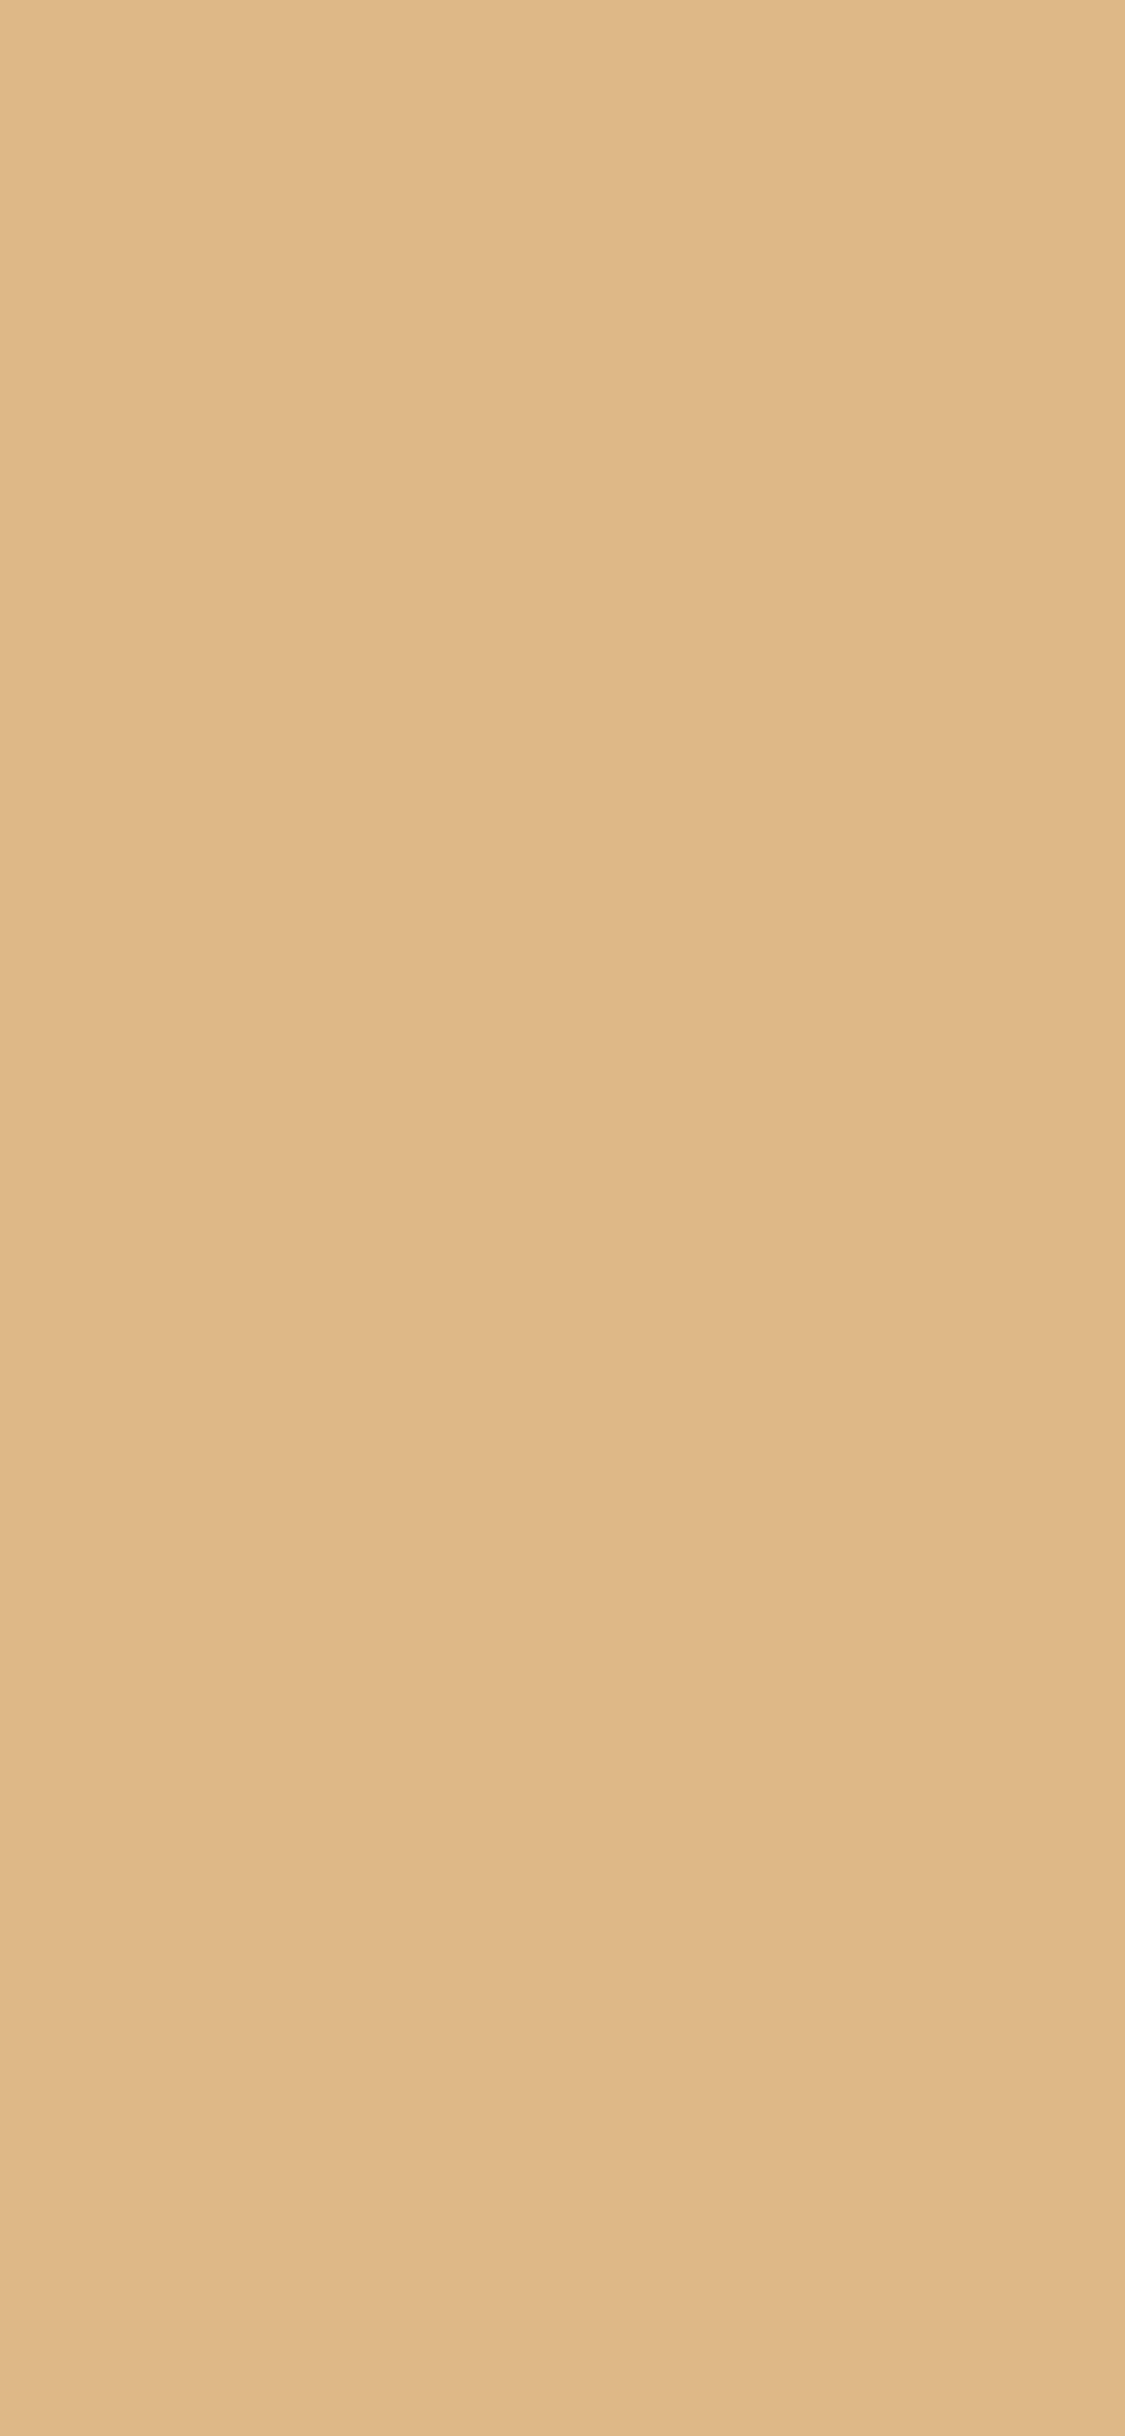 1125x2436 Burlywood Solid Color Background